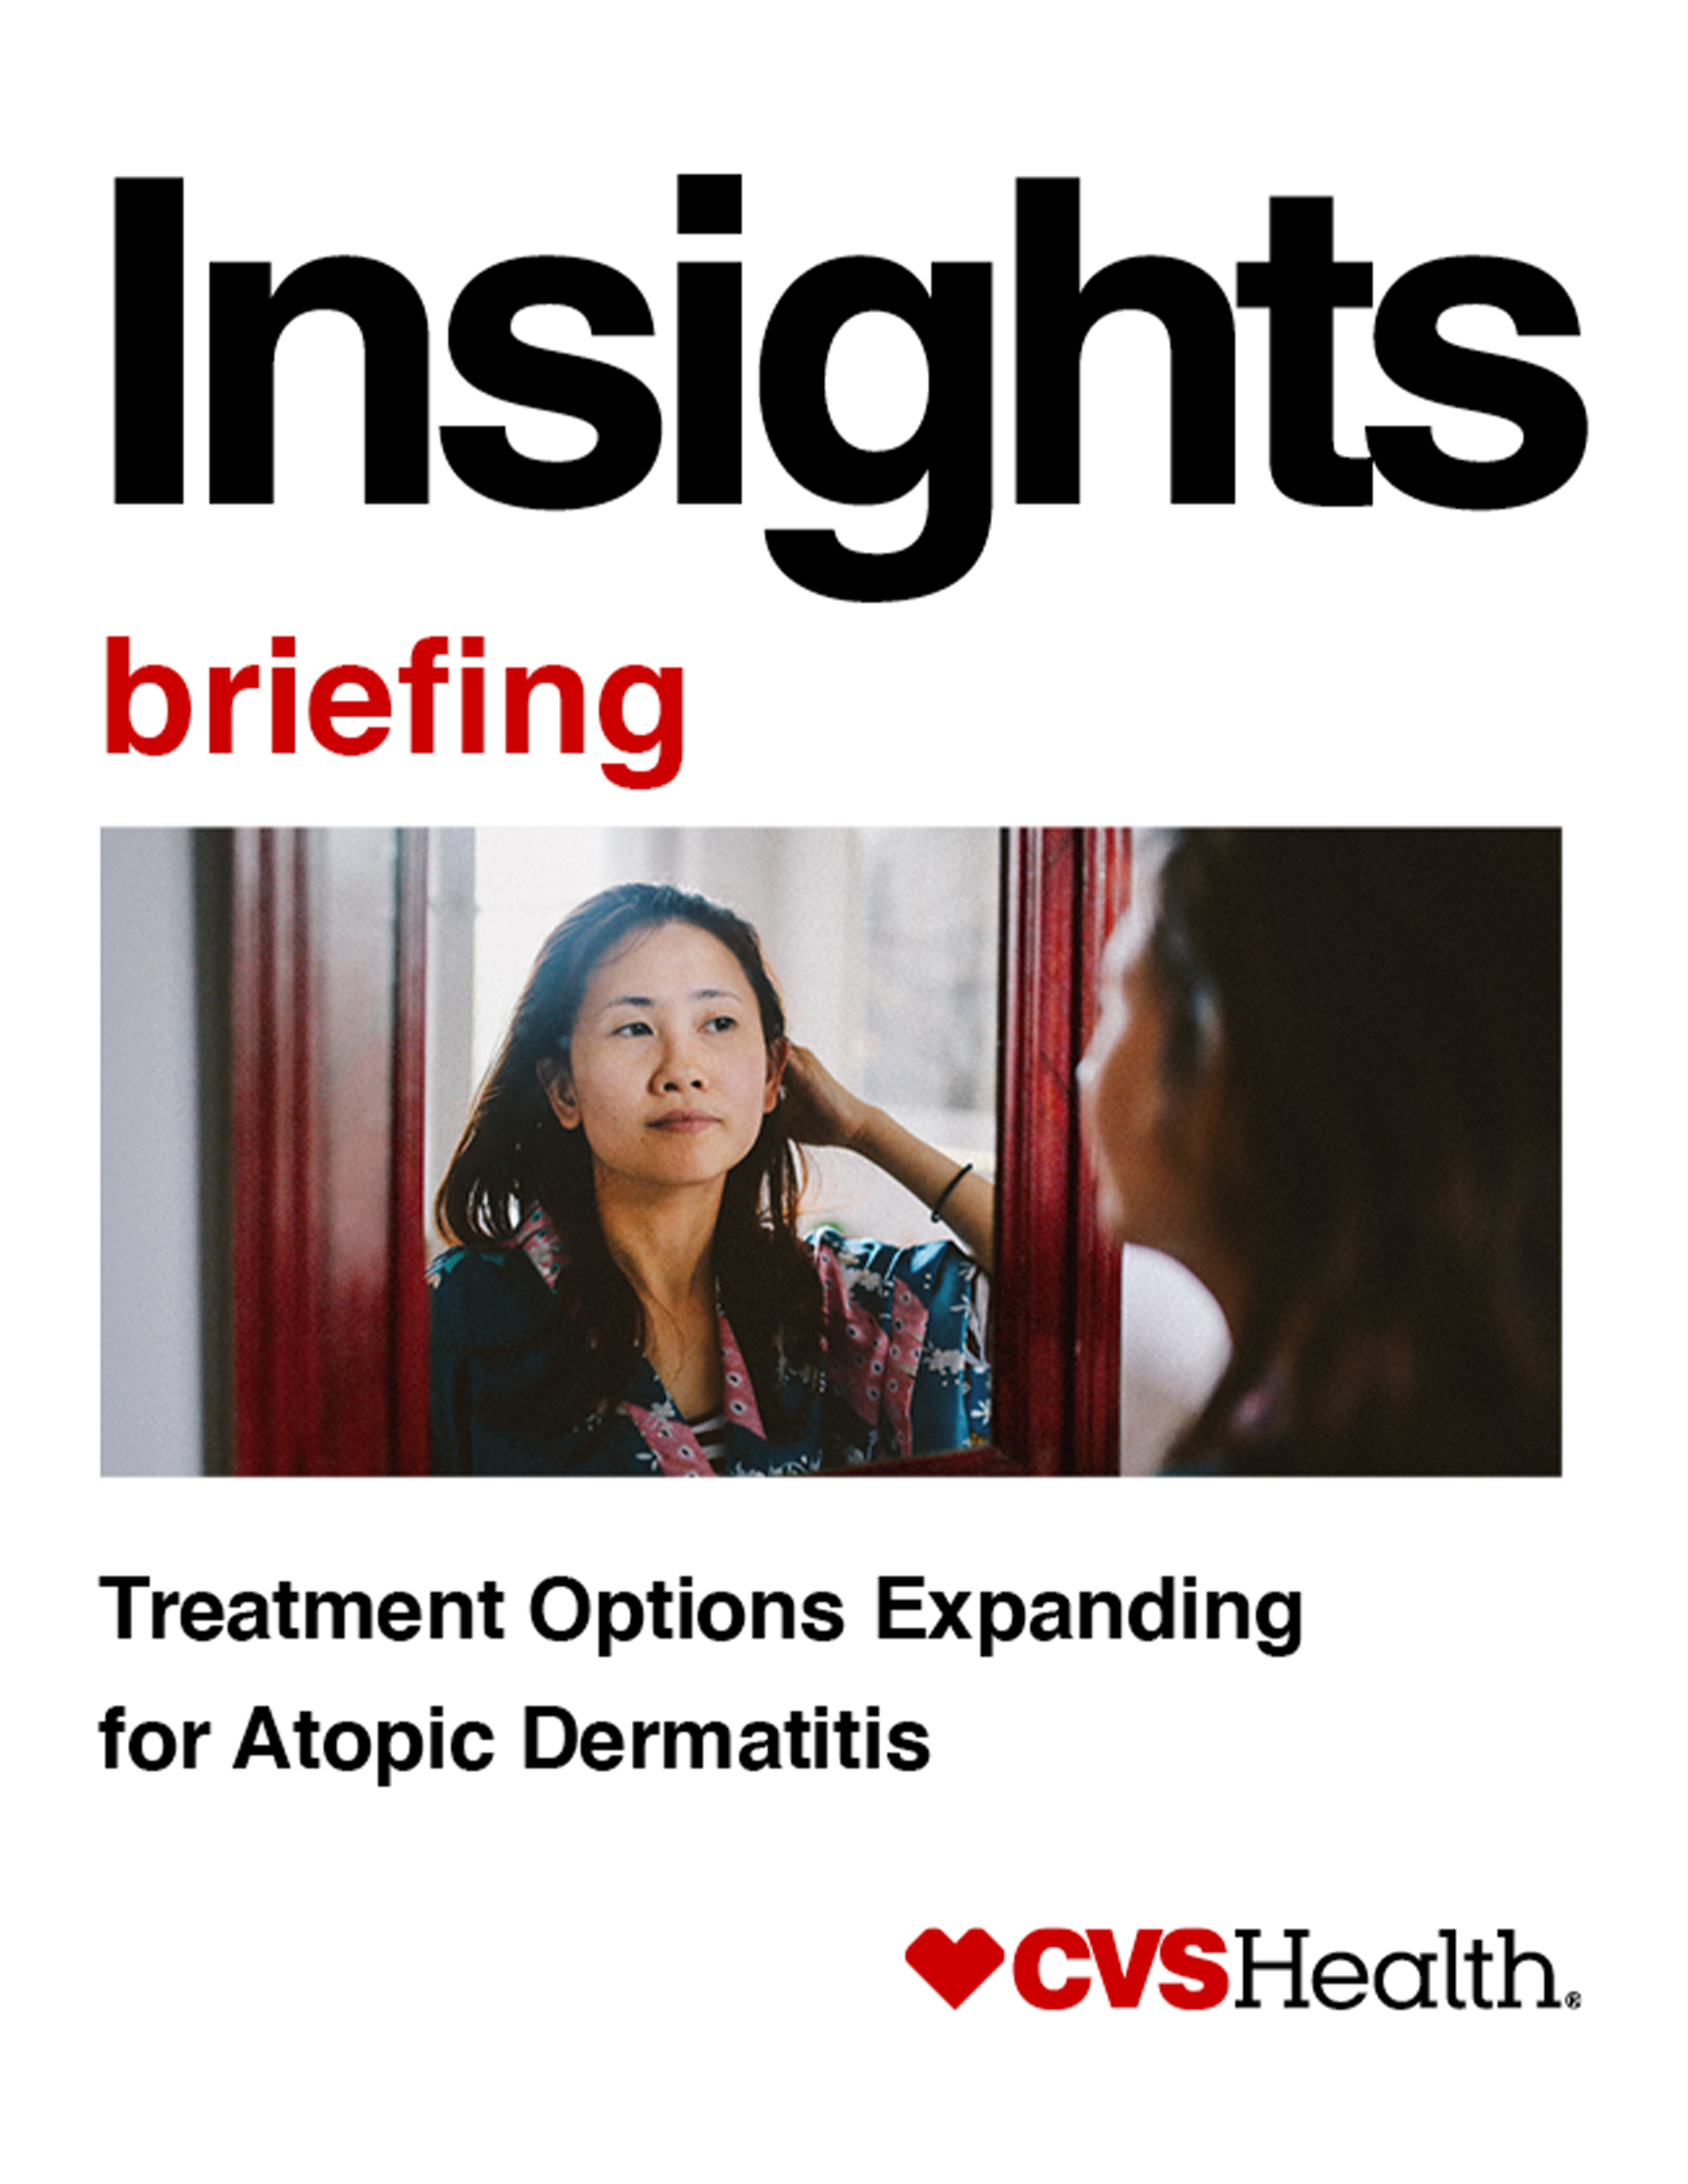 Treatment Options Expanding for Atopic Dermatitis